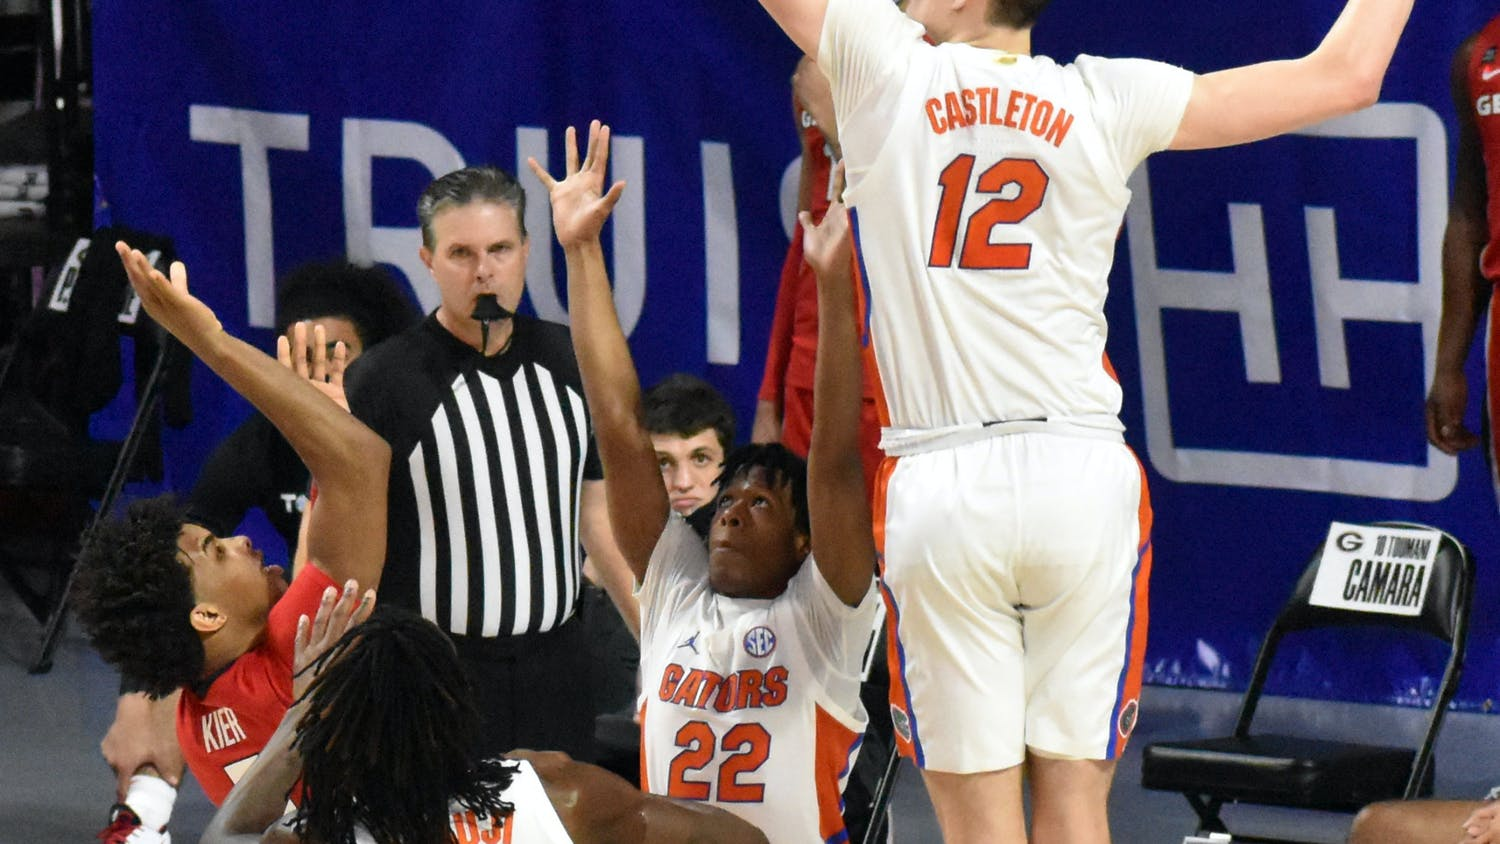 Colin Castleton against Georgia on Feb. 20. UF basketball released its 2021 non-conference schedule Thursday.